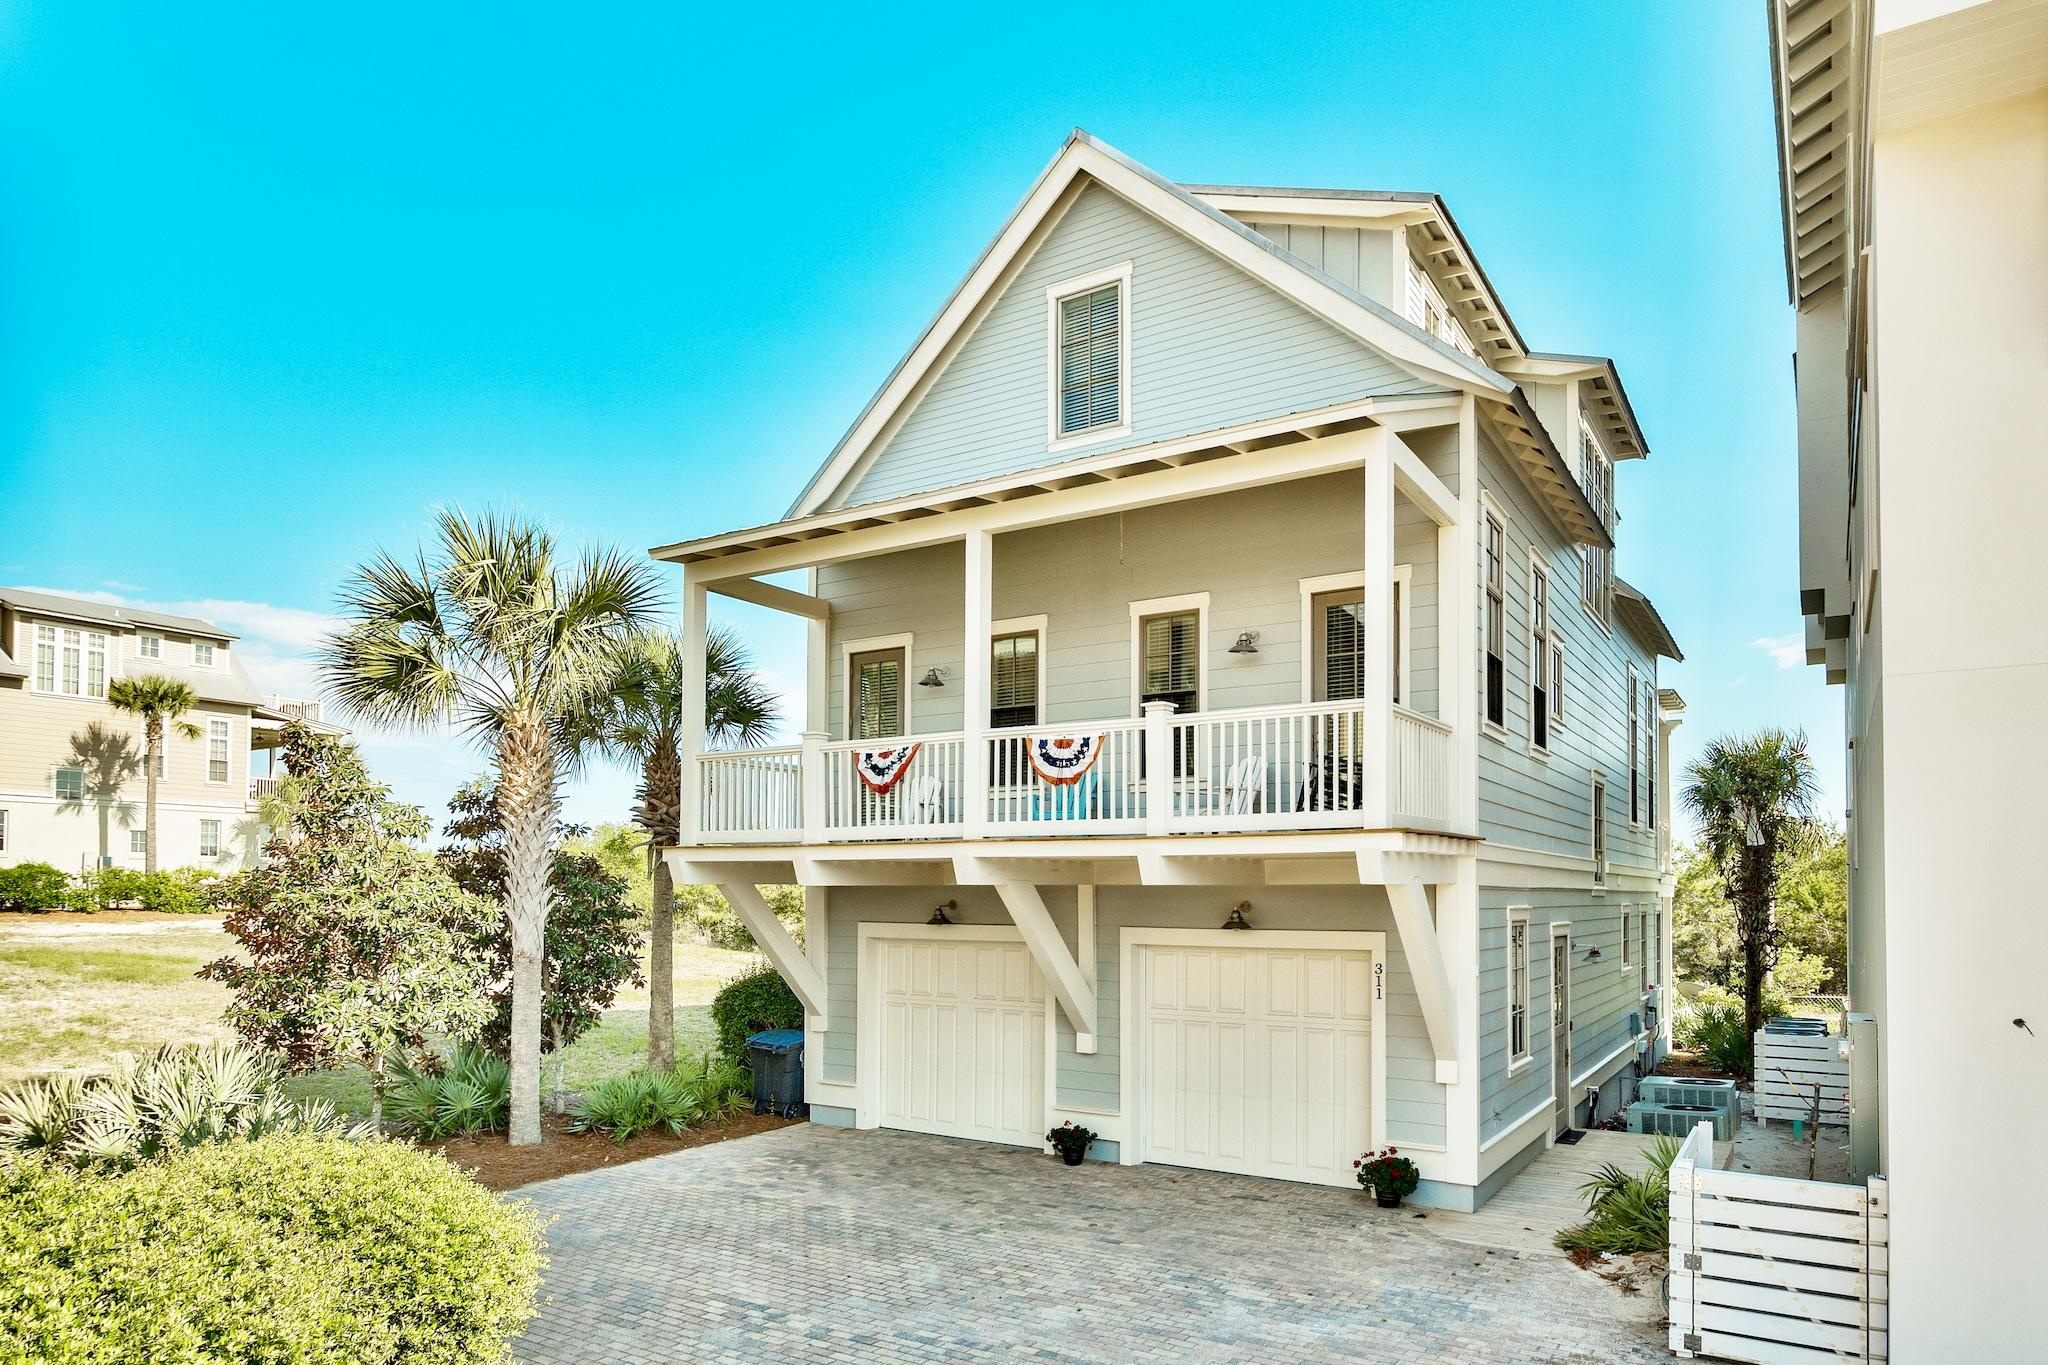 Photo of home for sale at 311 Cypress, Santa Rosa Beach FL